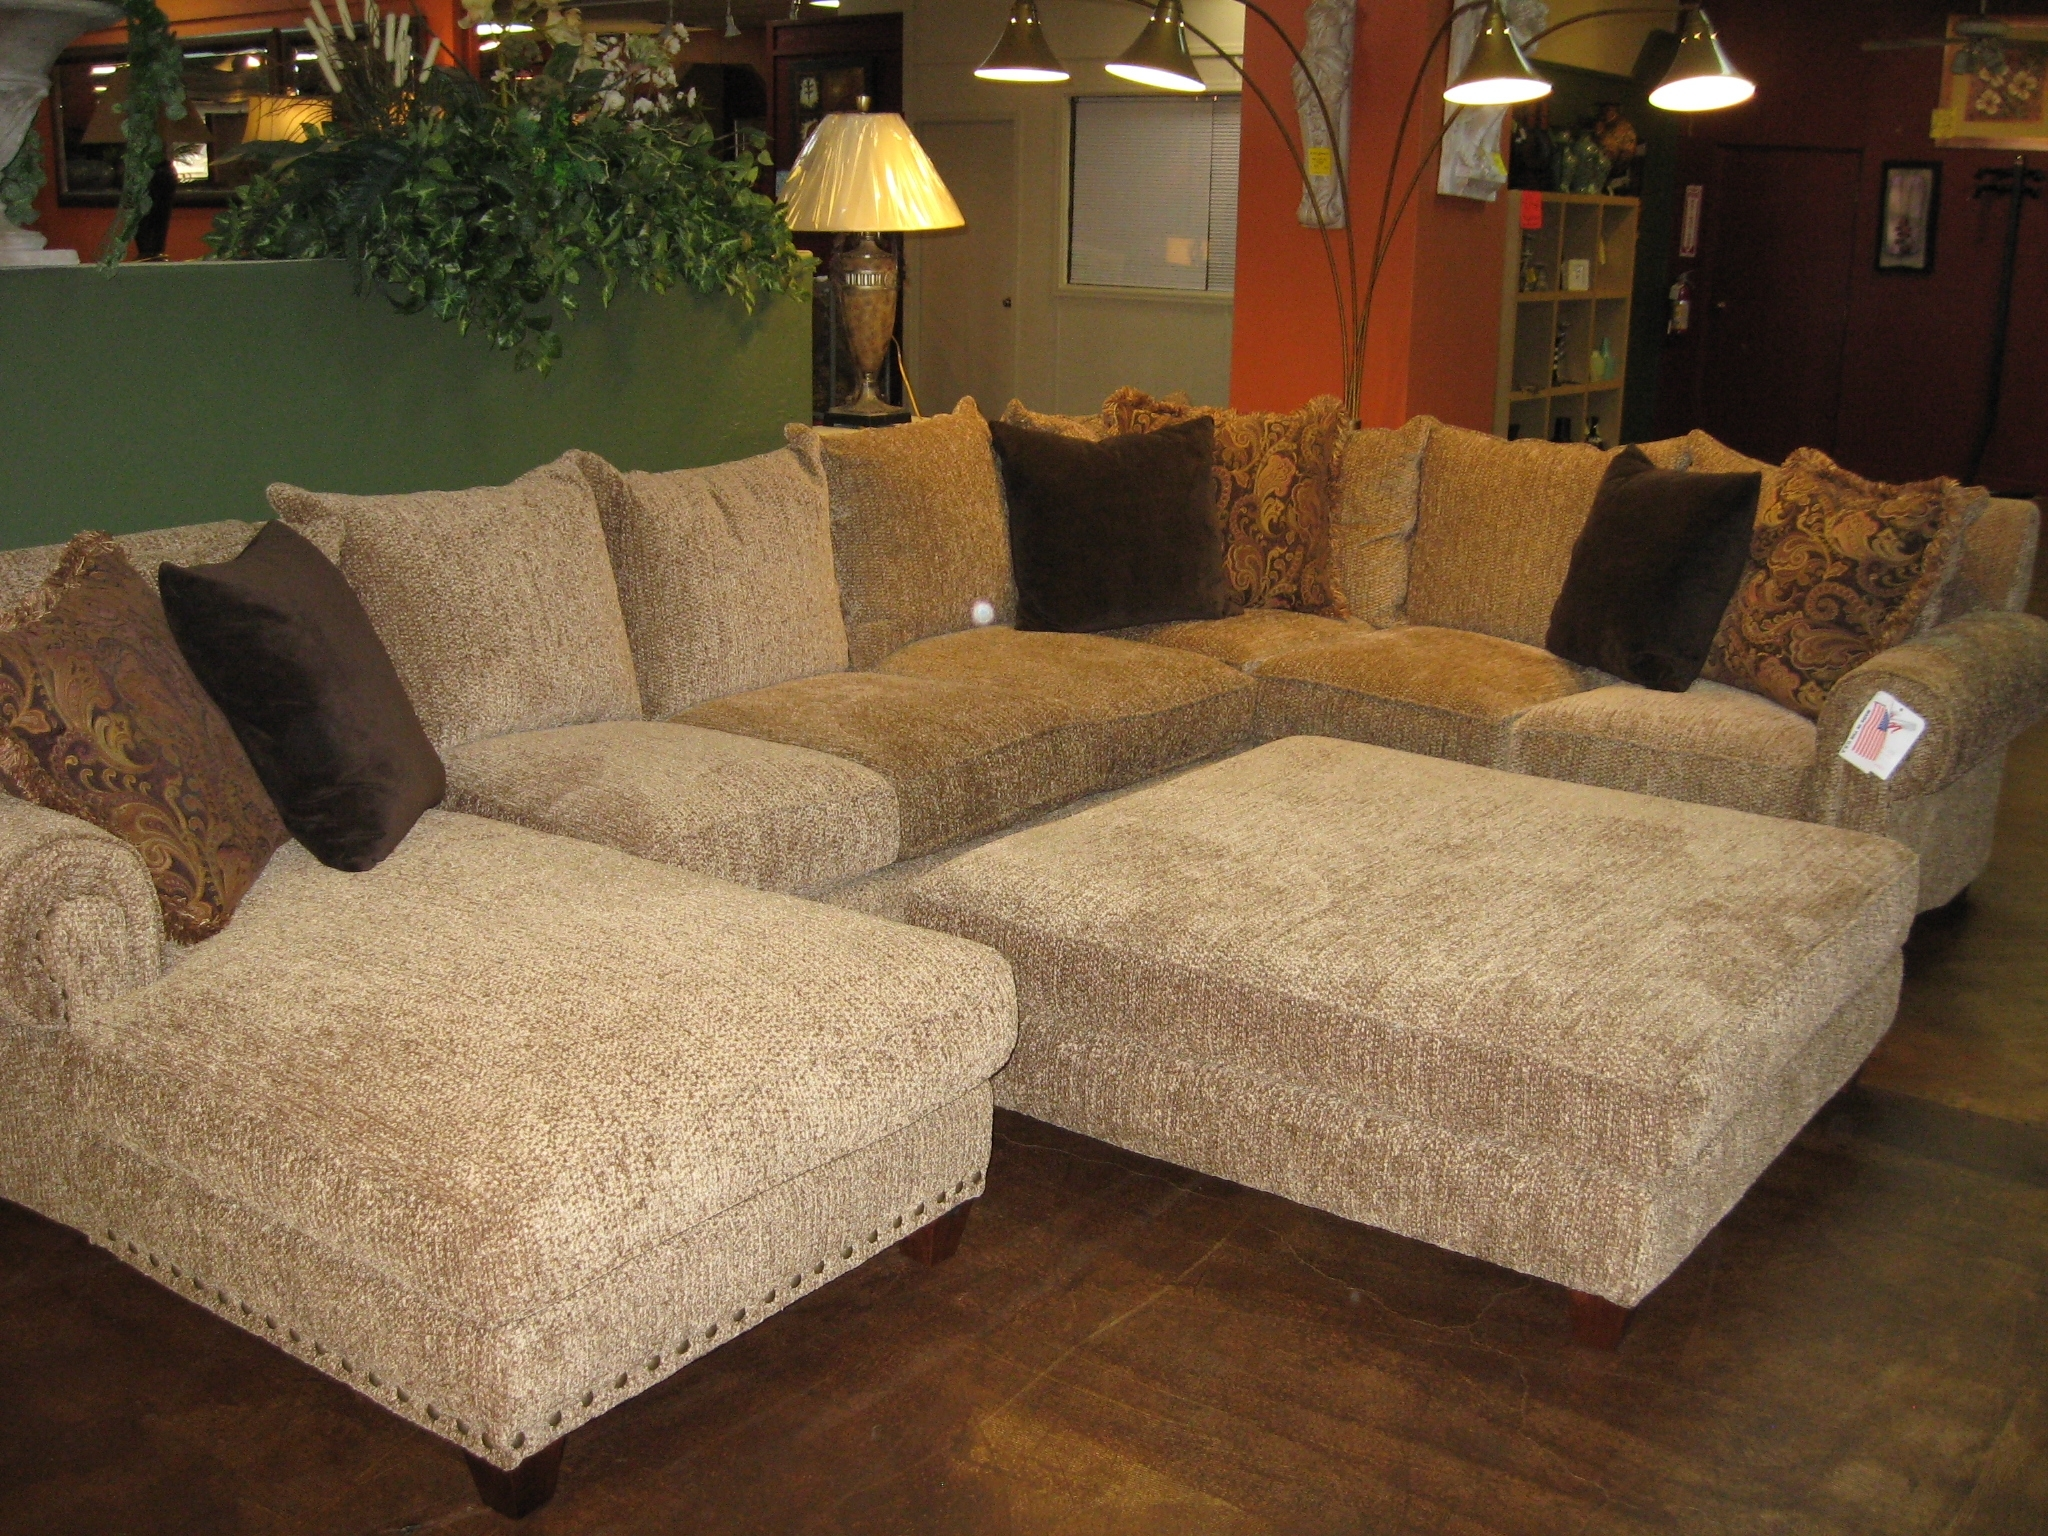 Elegant Large Sectional Sofa With Ottoman 52 With Additional Modern With Sofas With Large Ottoman (Photo 3 of 10)